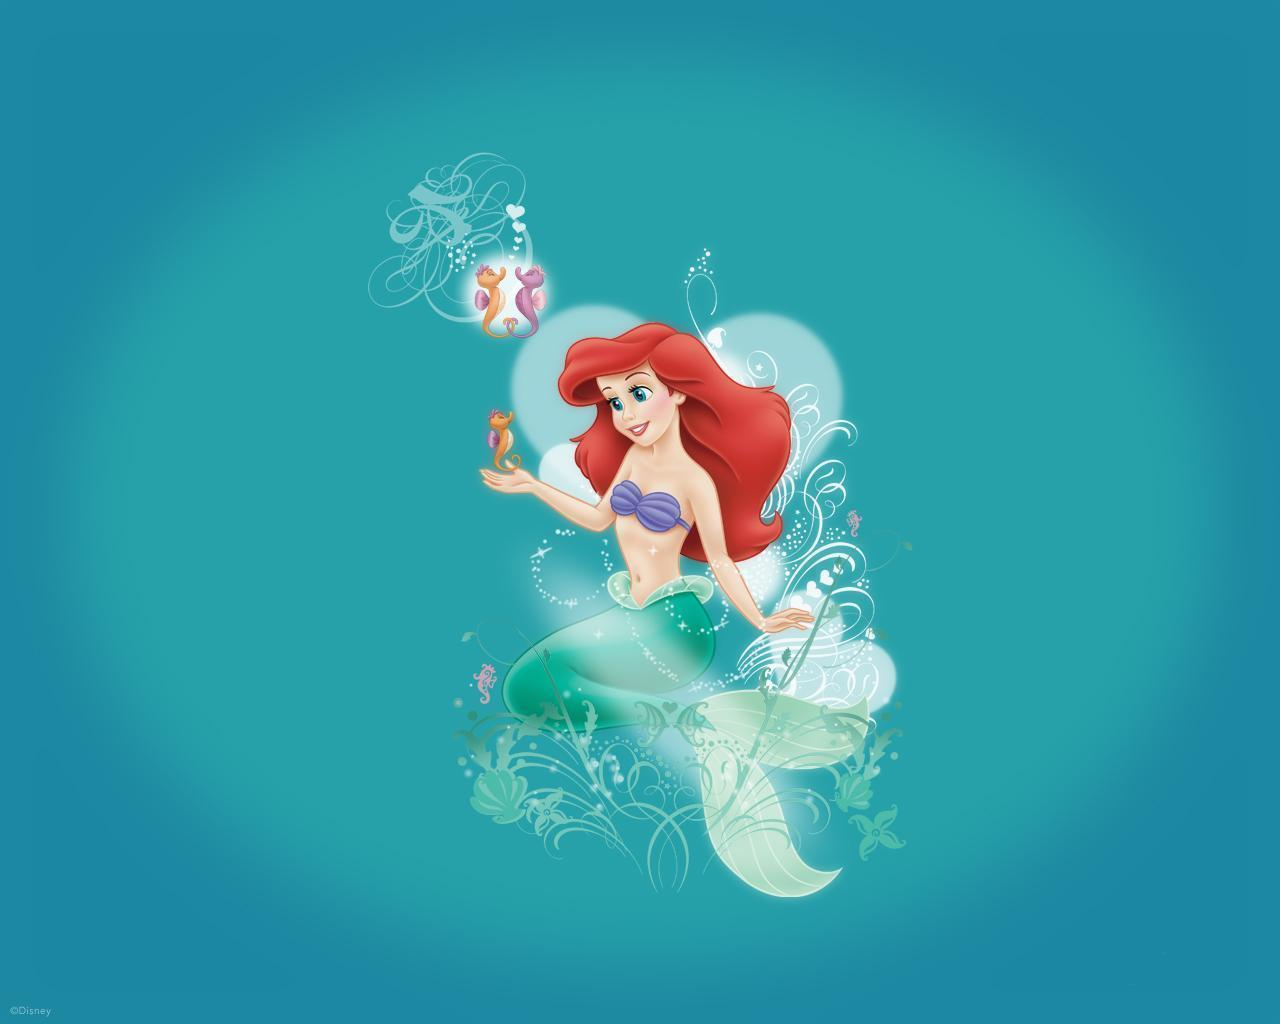 The Little Mermaid Wallpapers Wallpaper Cave